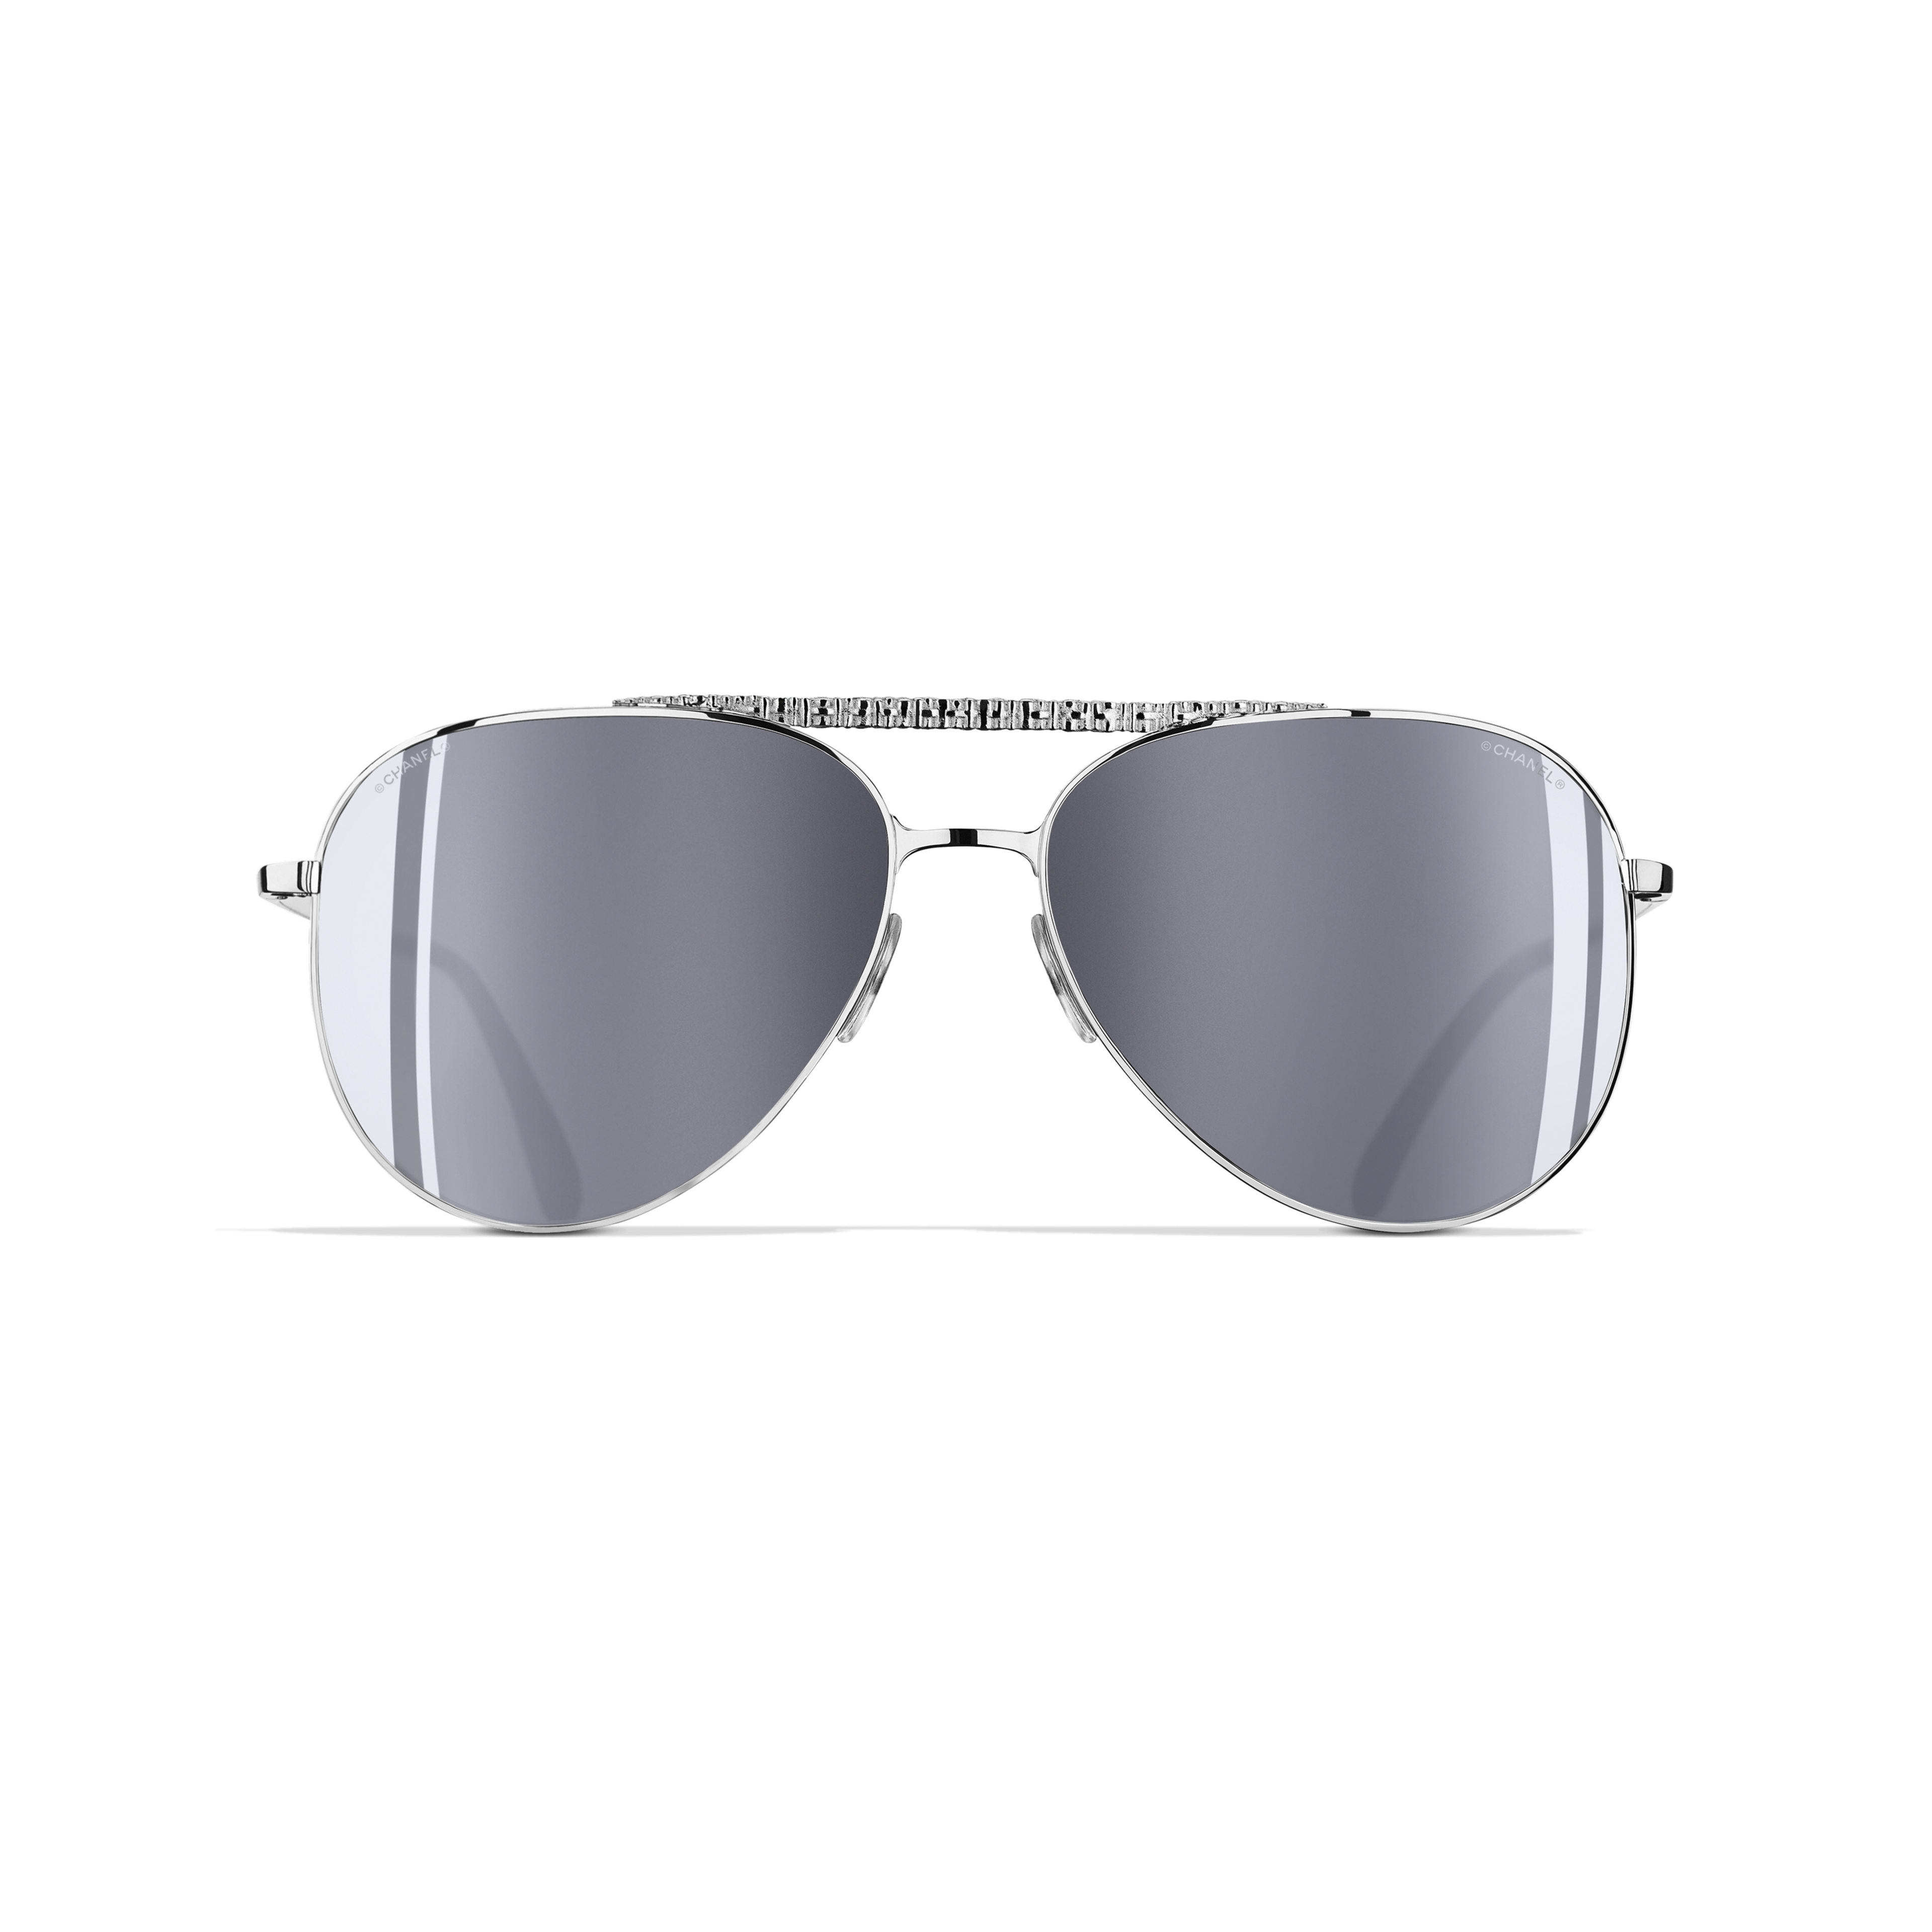 Pilot Sunglasses Metal Silver -                                                    view 2 - see full sized version